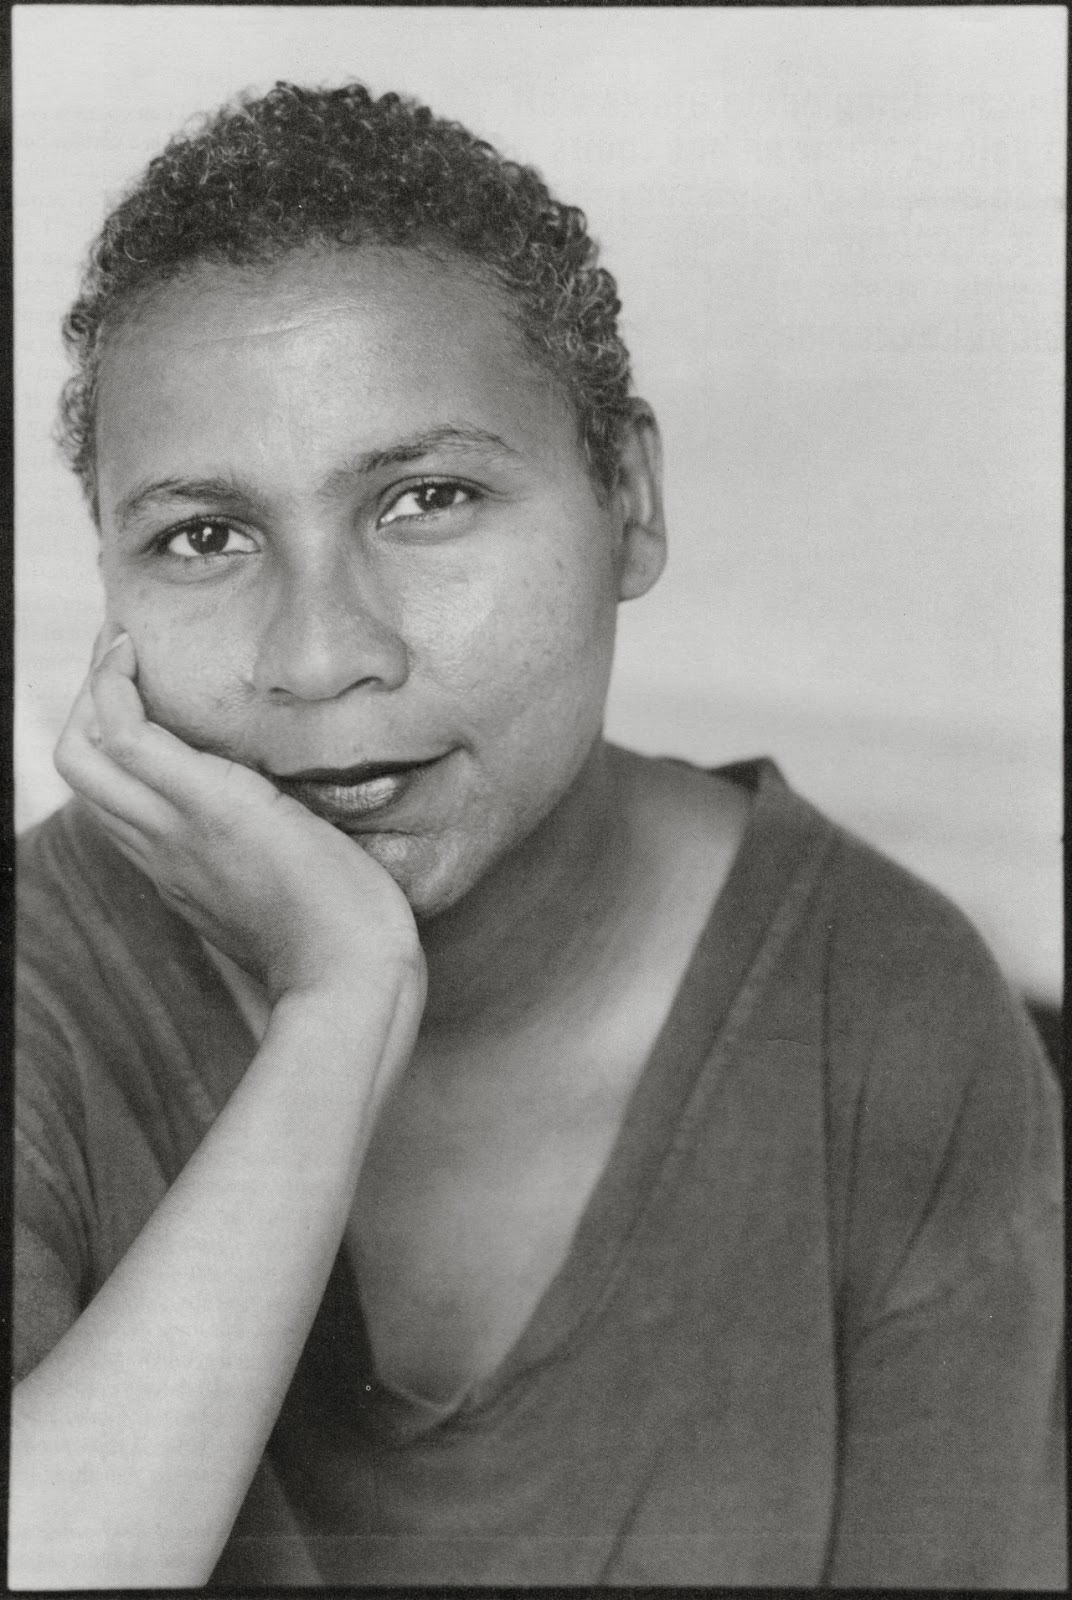 response to bell hooks Below, bell hooks reminds readers why we should be skeptical of this sort of faux feminism— one that does little to re-imagine the world or to build collective movements, but instead works to recreate the same old white heteropatriarchy that defines american empire.